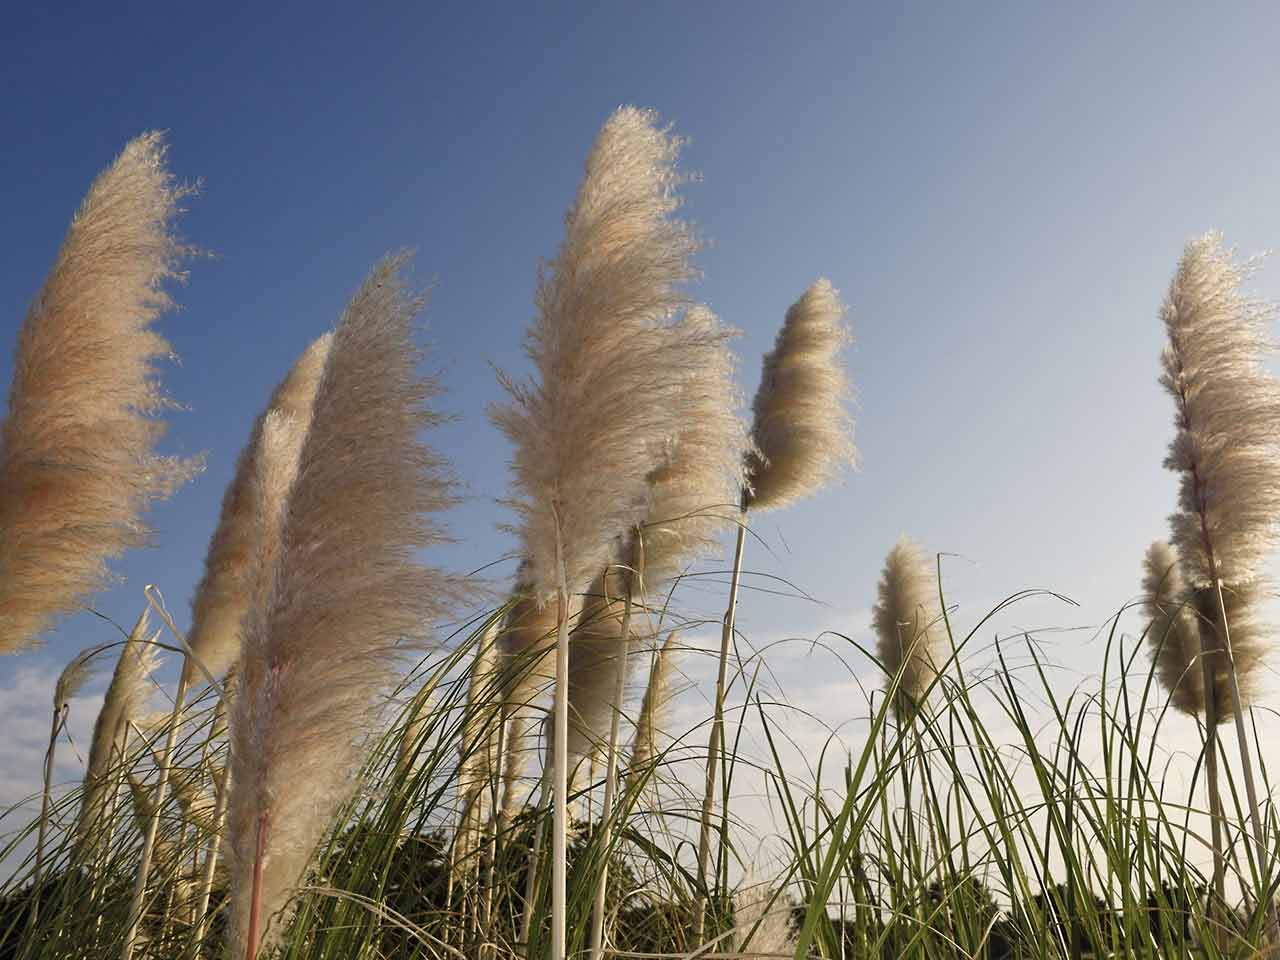 Pampas grass blowing in the breeze